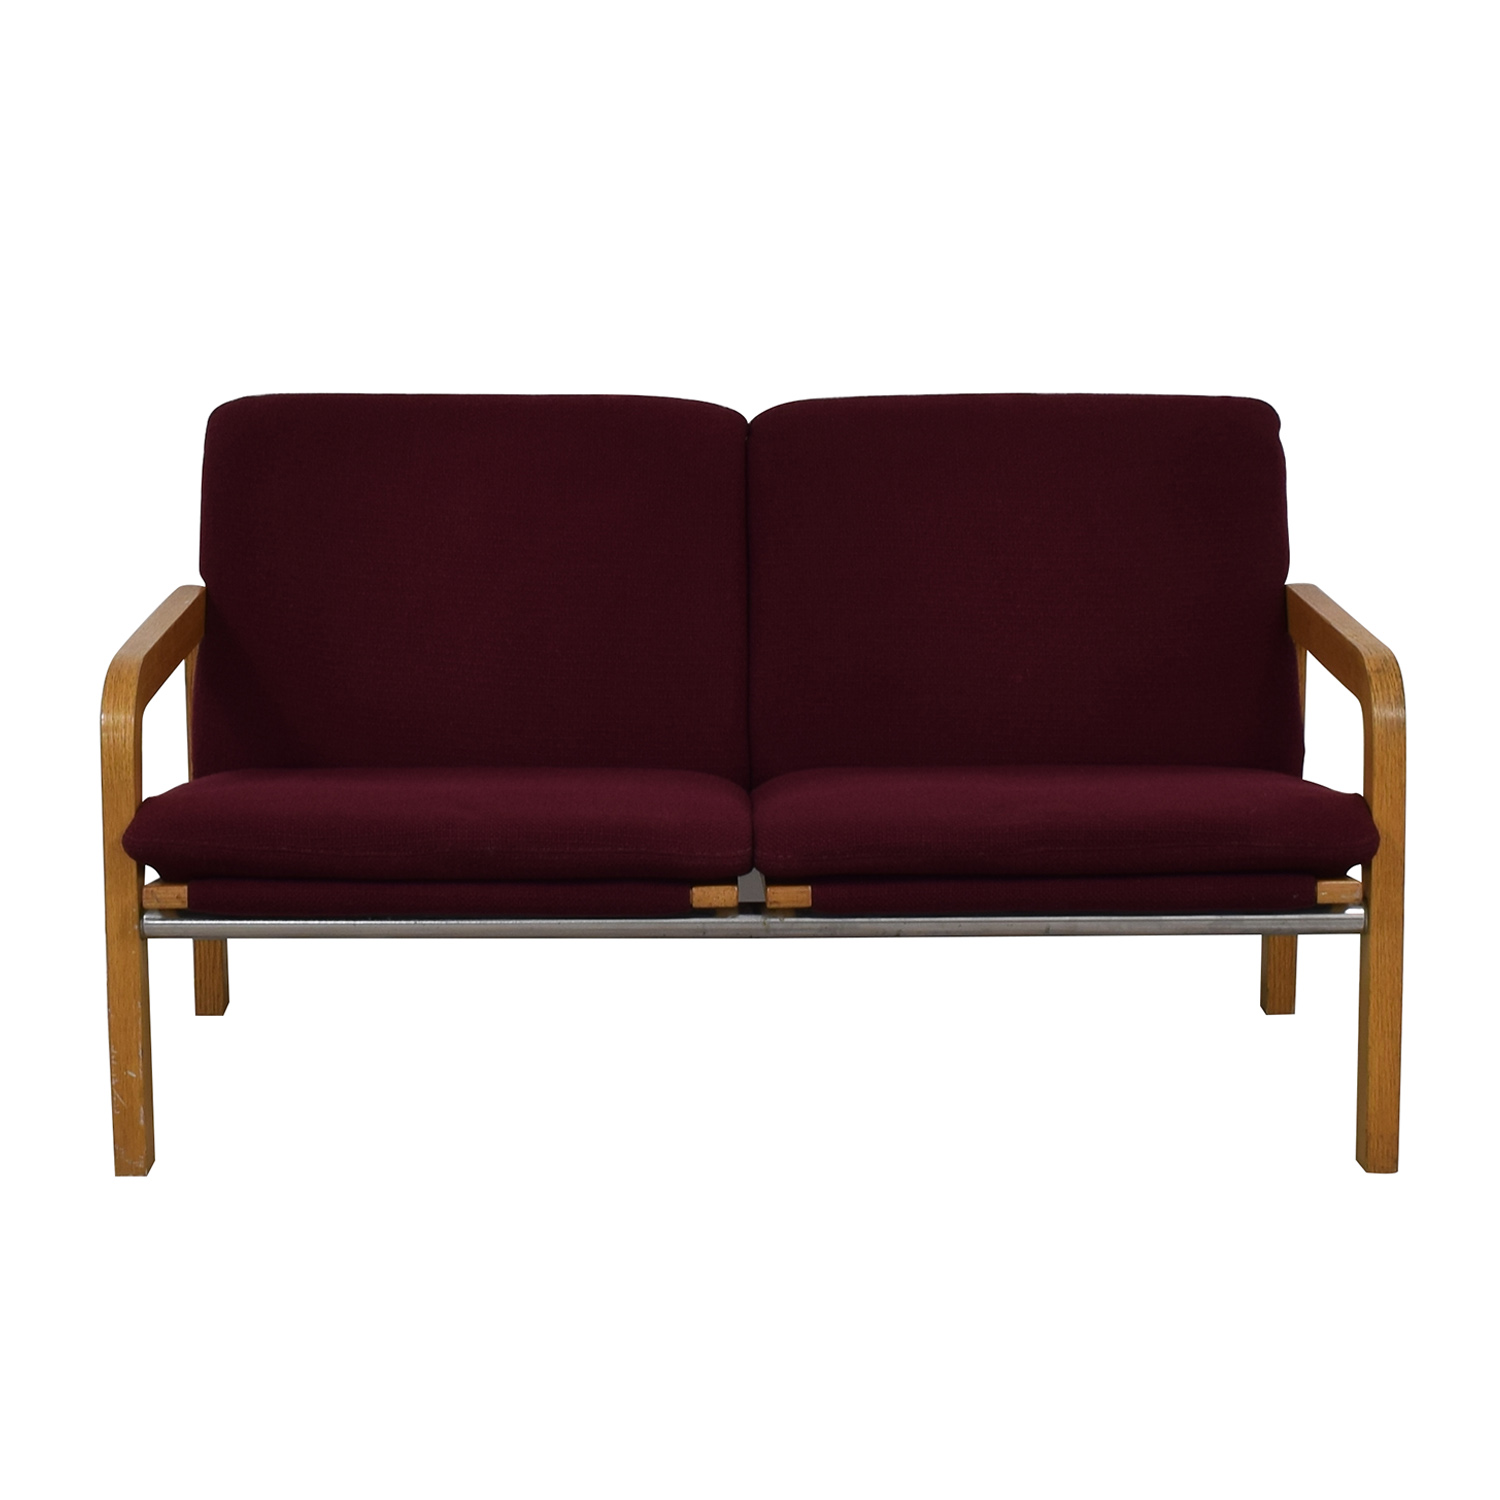 buy Thonet Thonet Bentwood Couch with Maroon Upholstery online